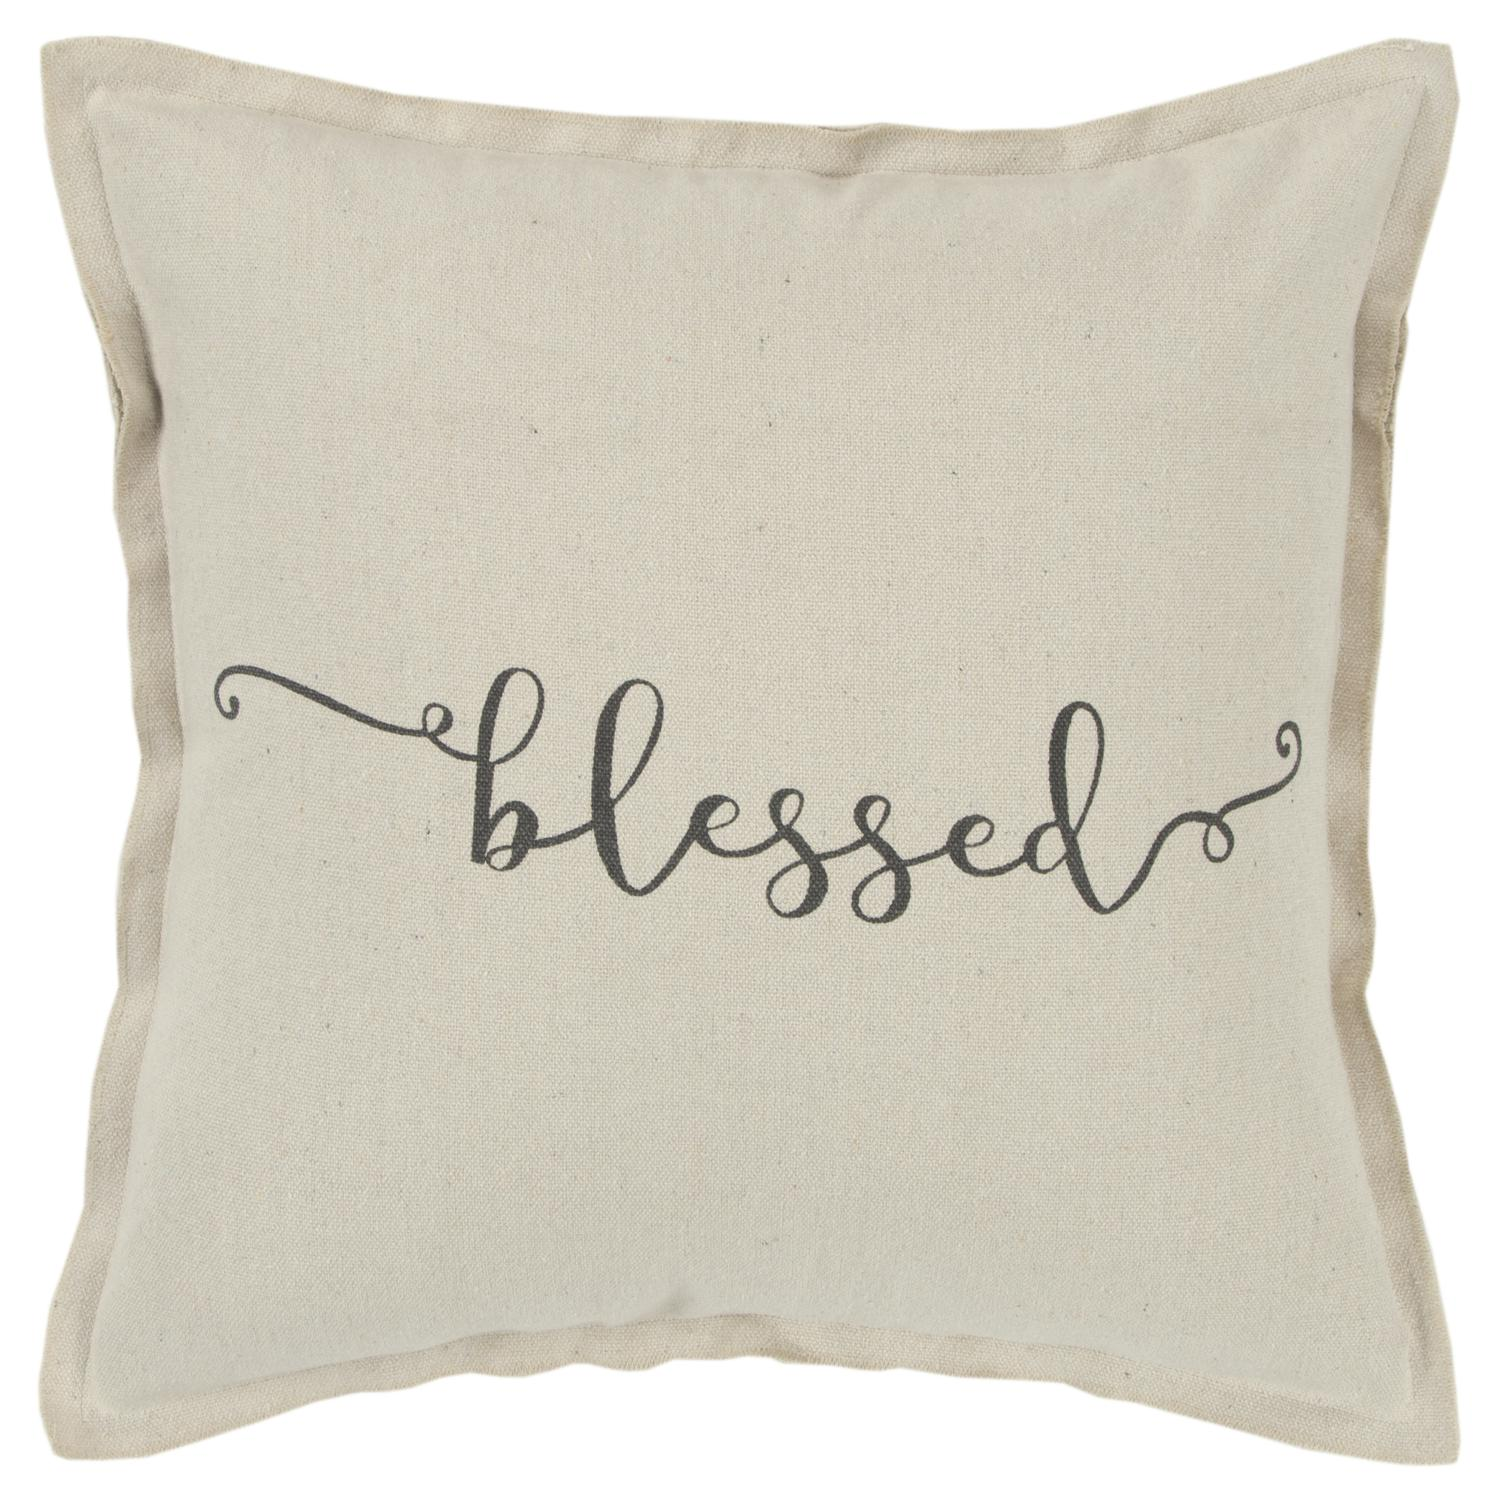 rizzy home holiday blessed decorative throw pillow cover 20 x 20 natural walmart com